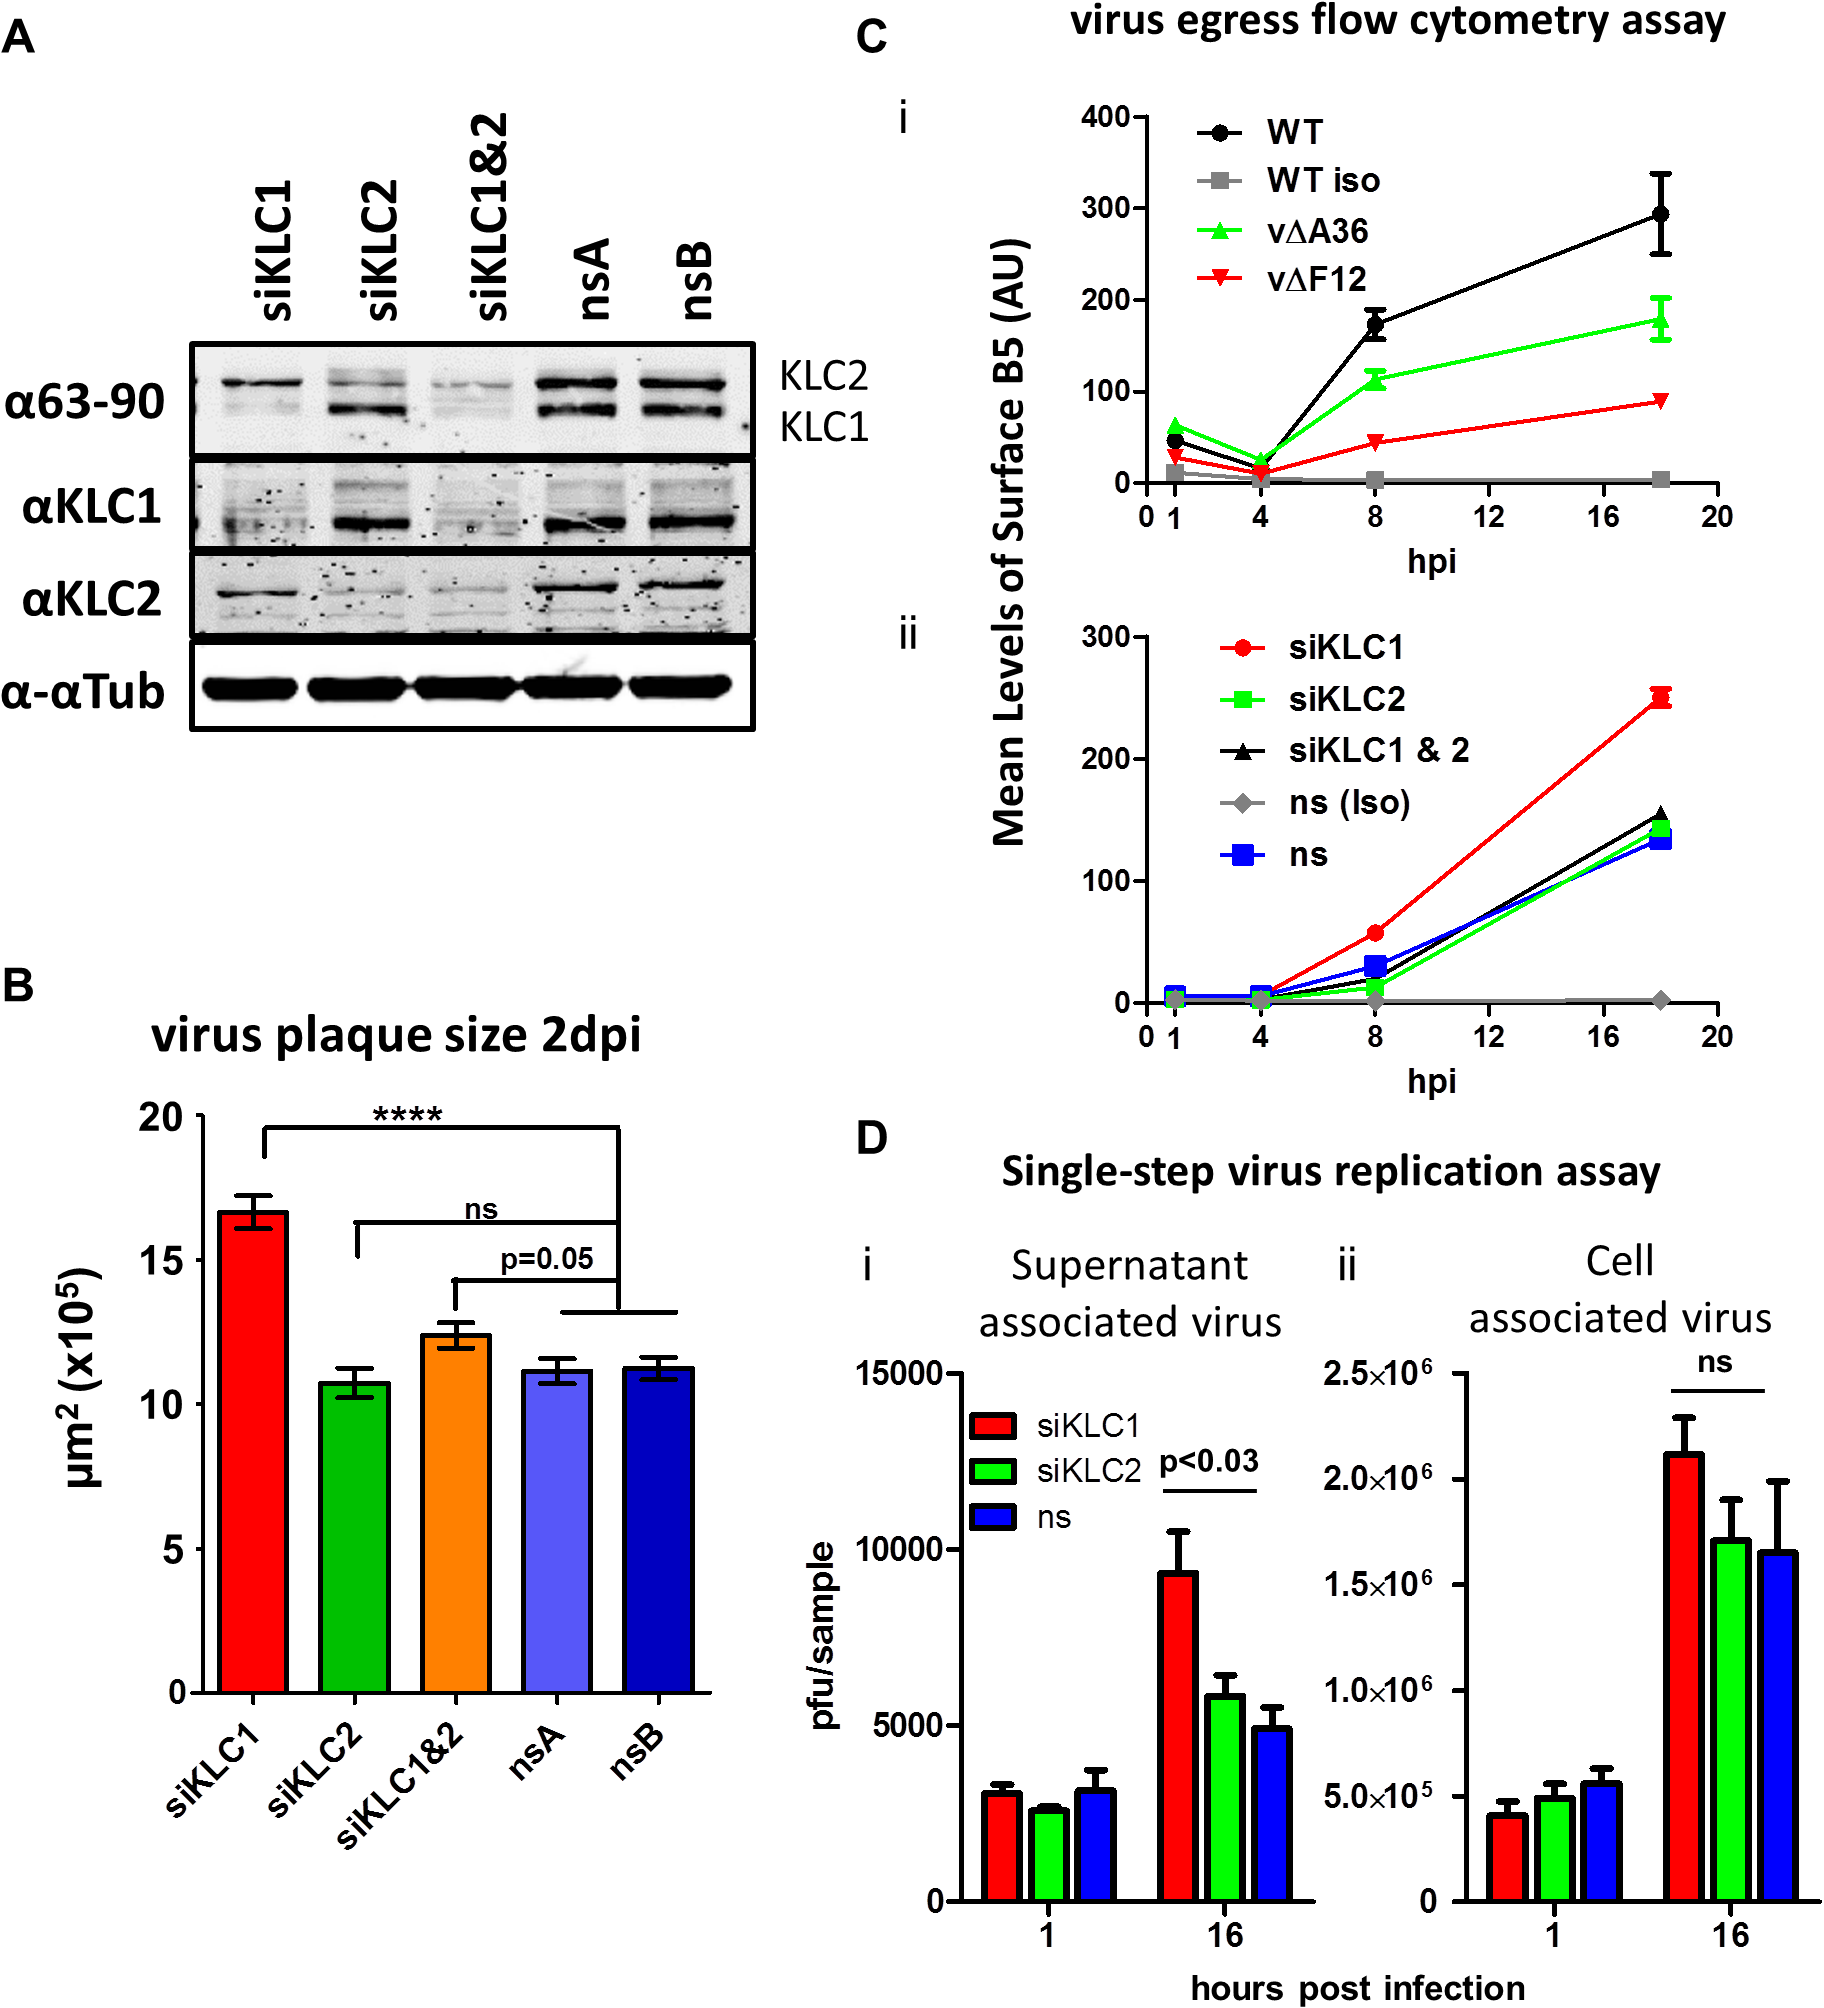 The effect of KLC knock-down by siRNA on virus egress.